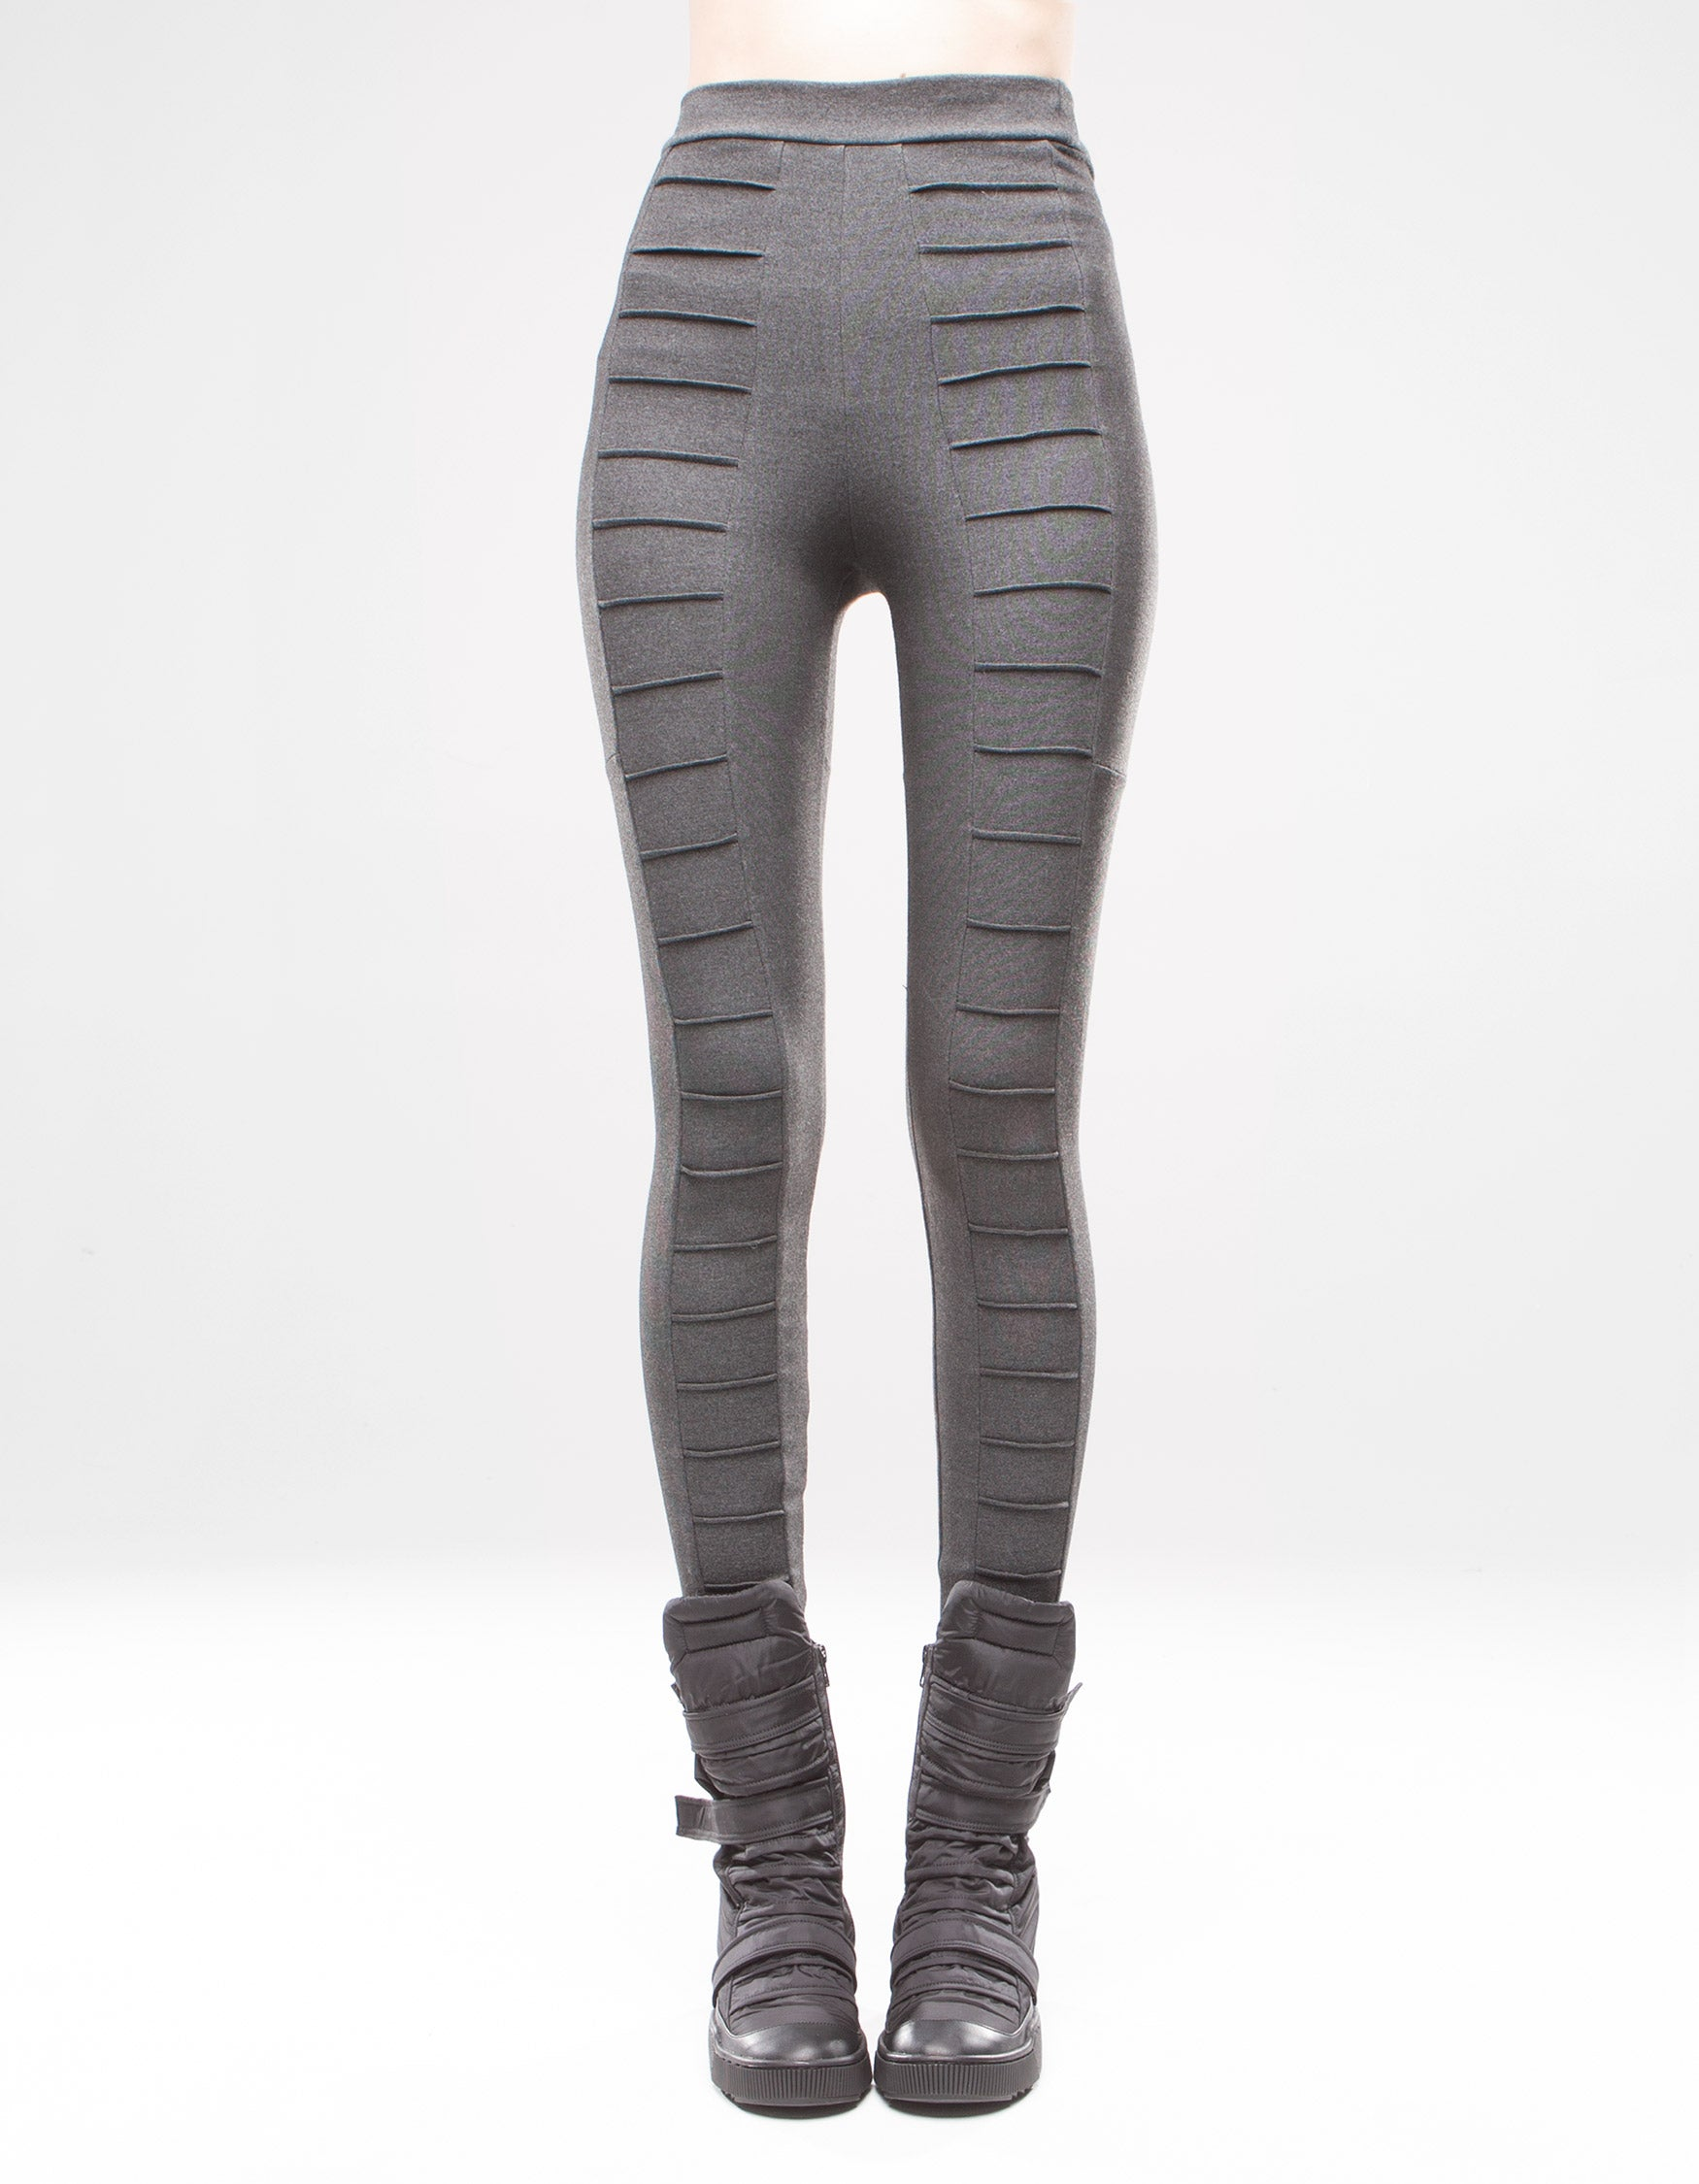 LEGGINGS GREY LEVELS